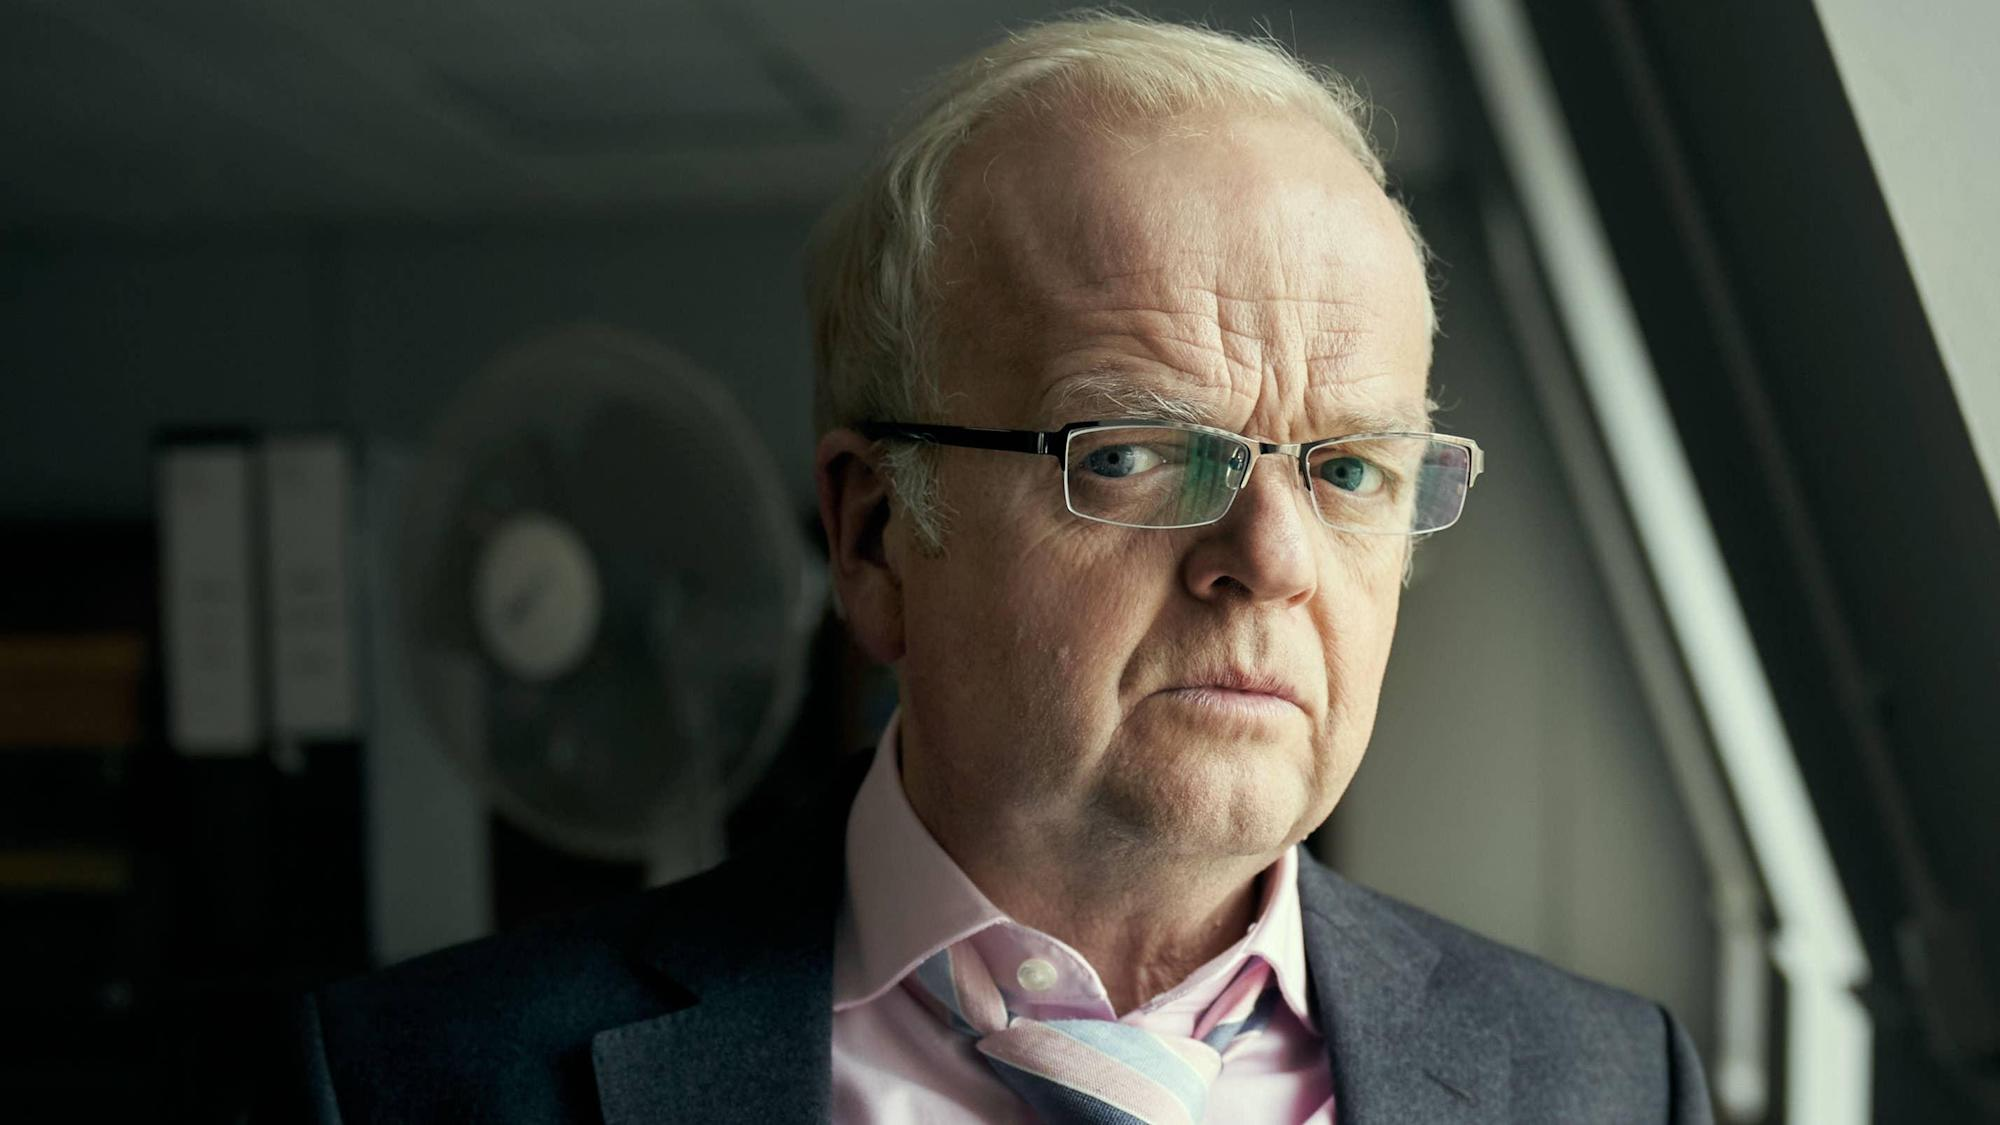 Toby Jones as Phil Shiner in first trailer for Iraq War drama Danny Boy